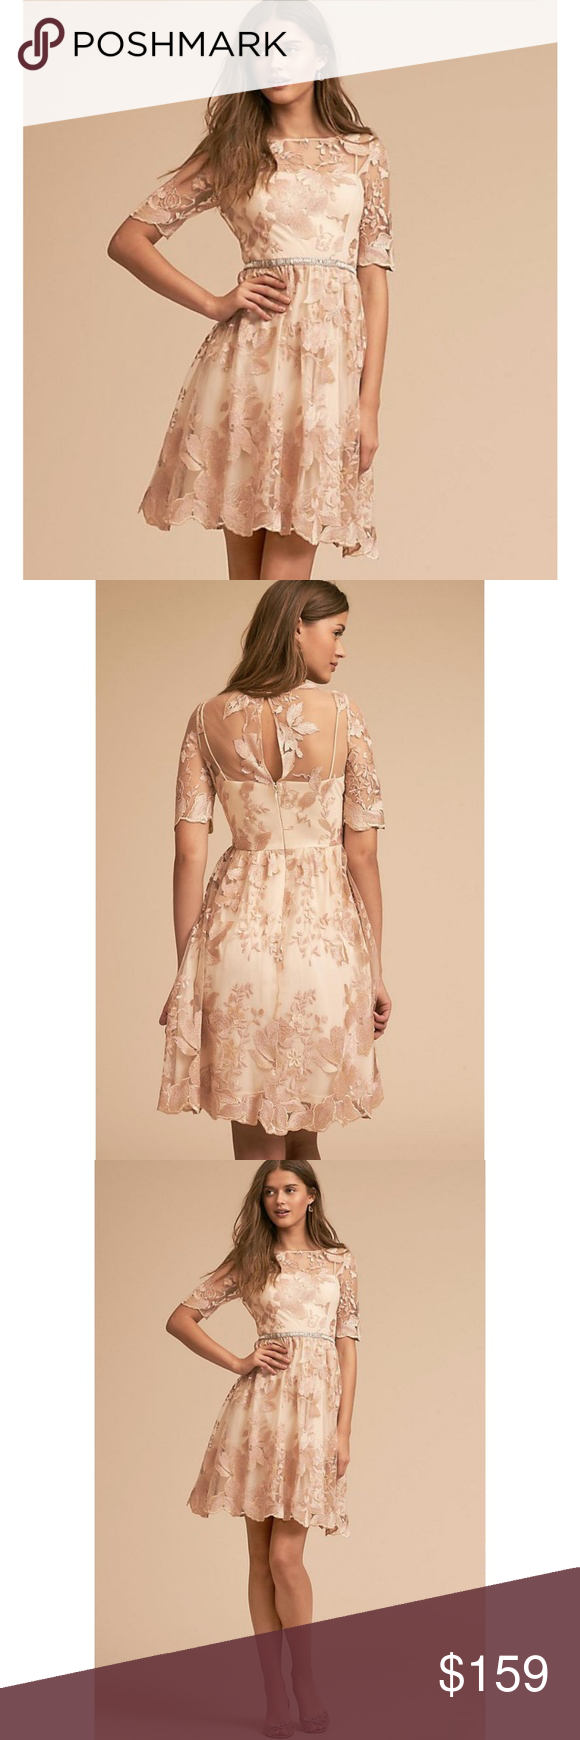 052954f613fb ⚡FINAL SALE NWT ANTHROPOLOGIE Nadine Lace Dress Brand new with tags NWT  ANTHROPOLOGIE Adrianna Papell Nadine Dress. Allover lace in a classic  silhouette ...